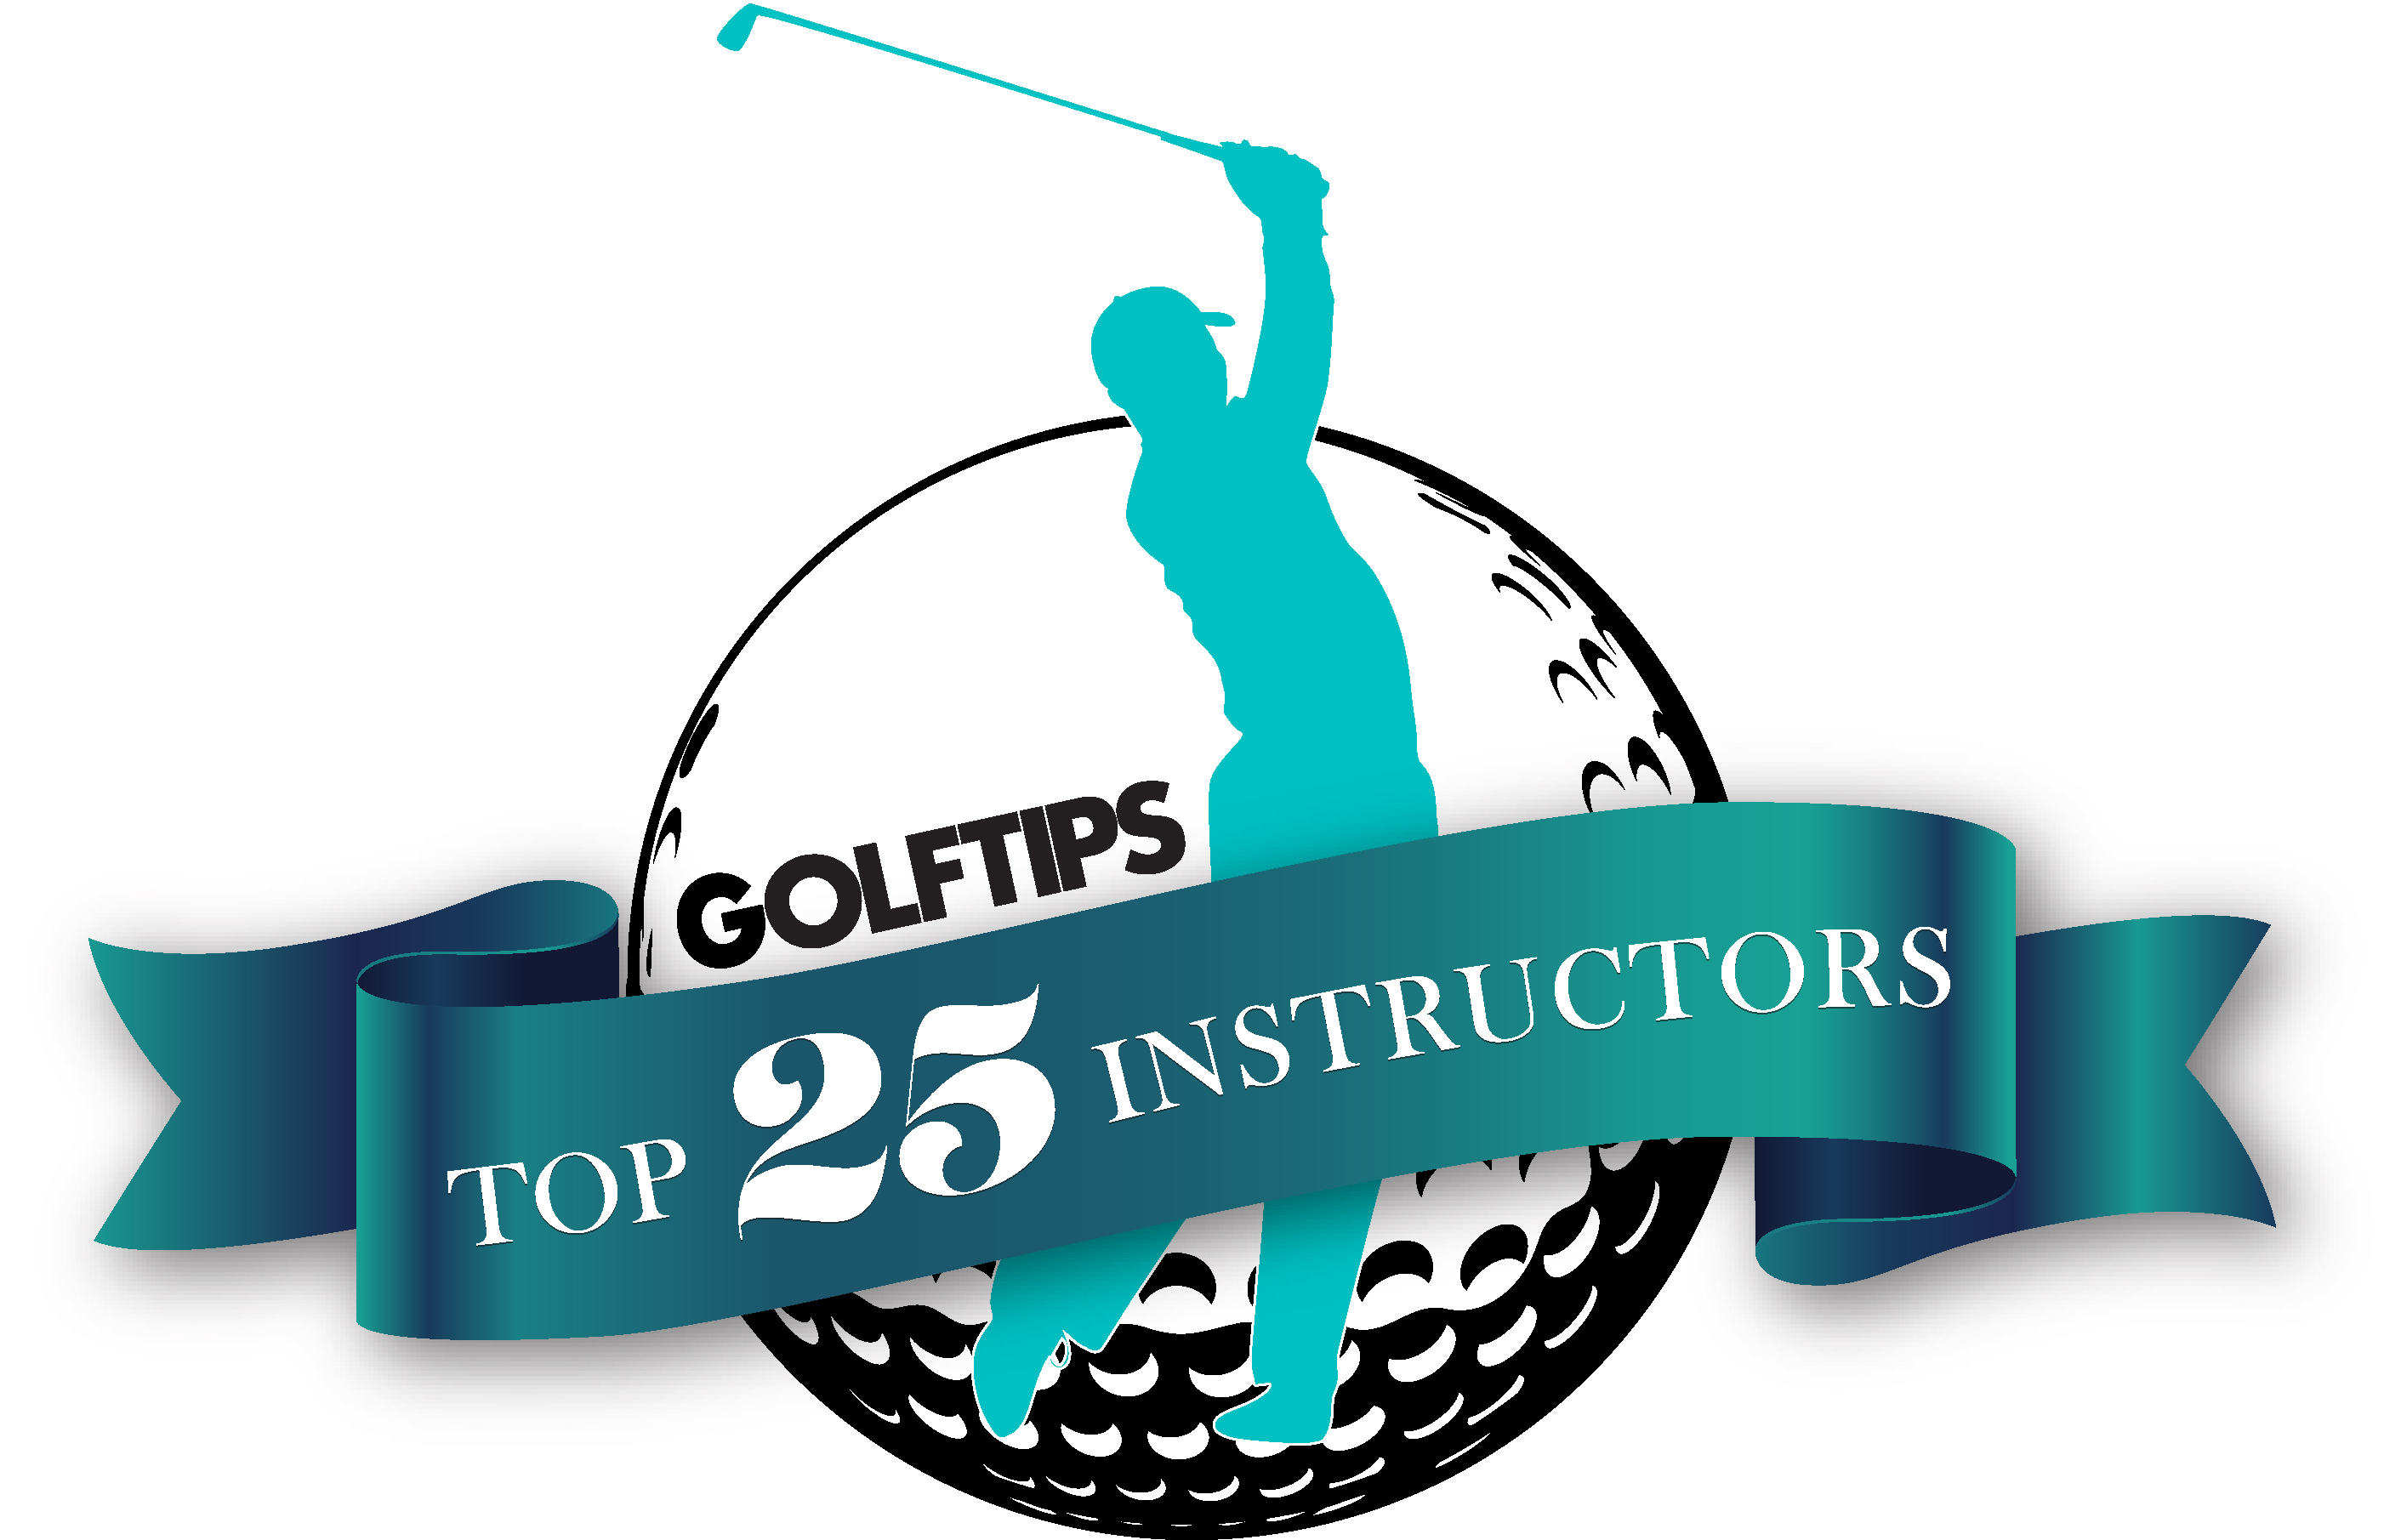 Golf Tips Top 25 Instructors Logo